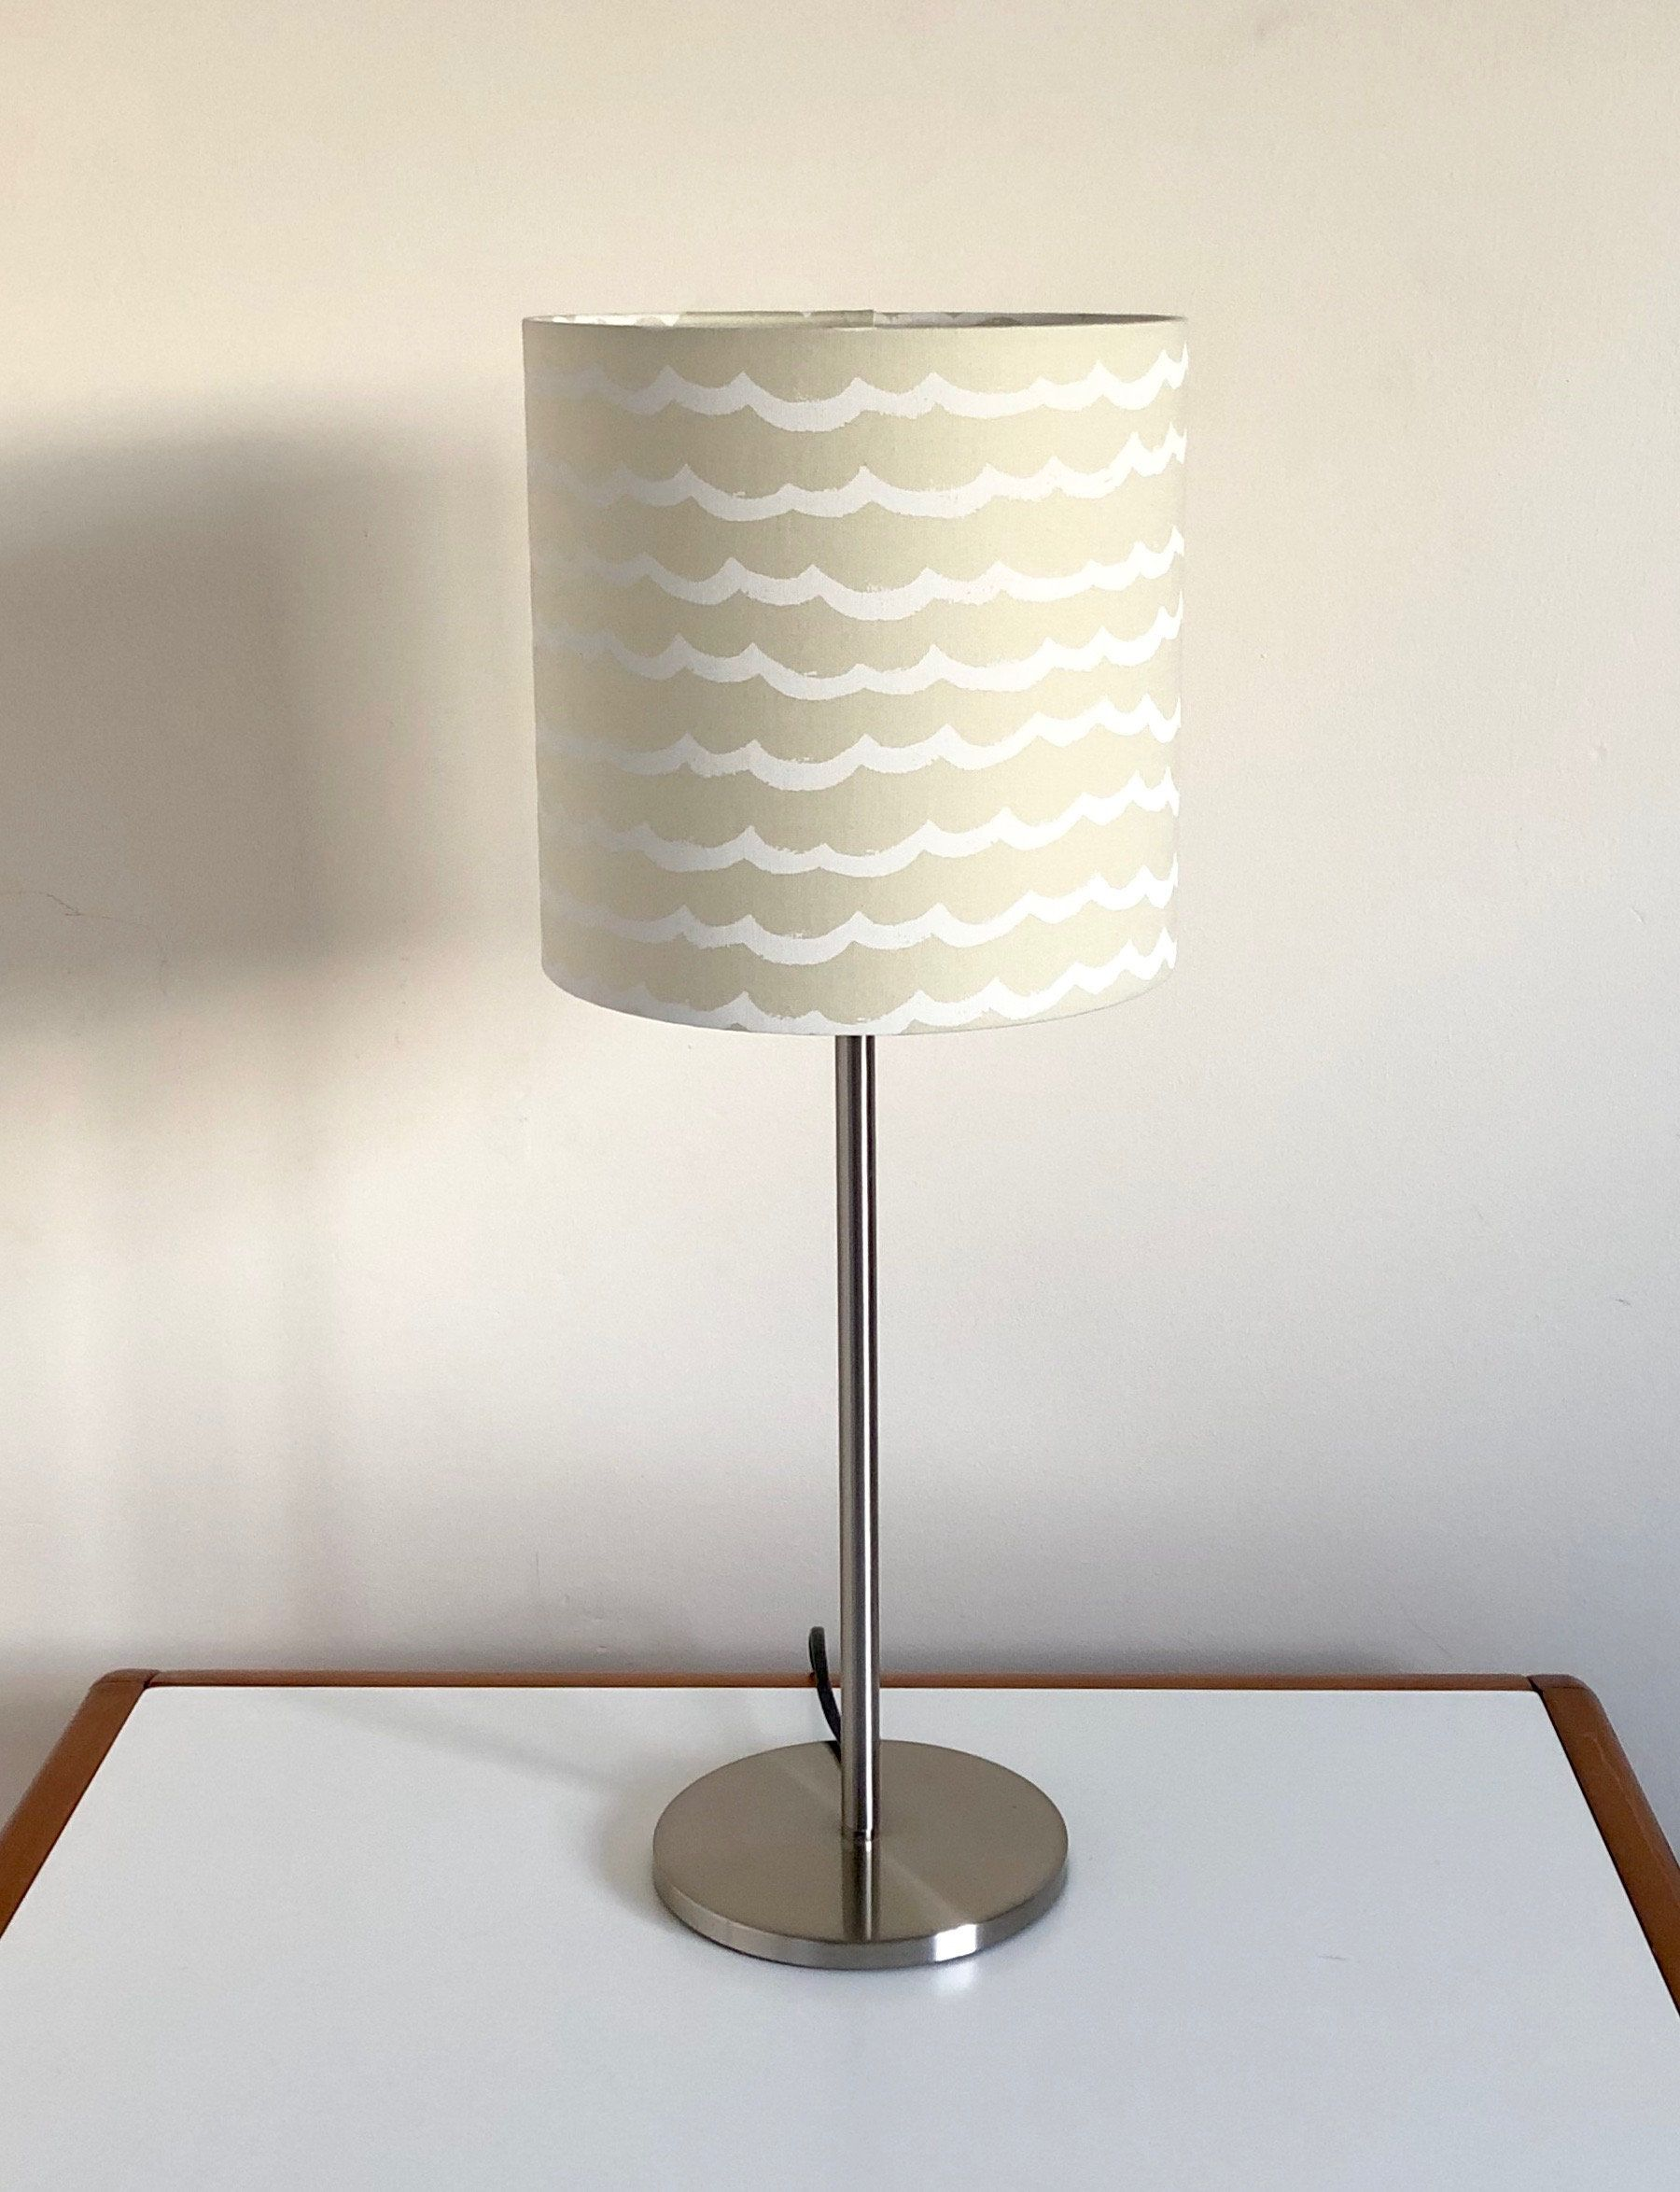 Waves On Sand Lampshade Cream Lampshade Cream Lamp Wave Print Lamp Shade Table Lamp Or Ceiling Lamp Coastal Beachy Decor Lamp Ceiling Lamp Table Lamp